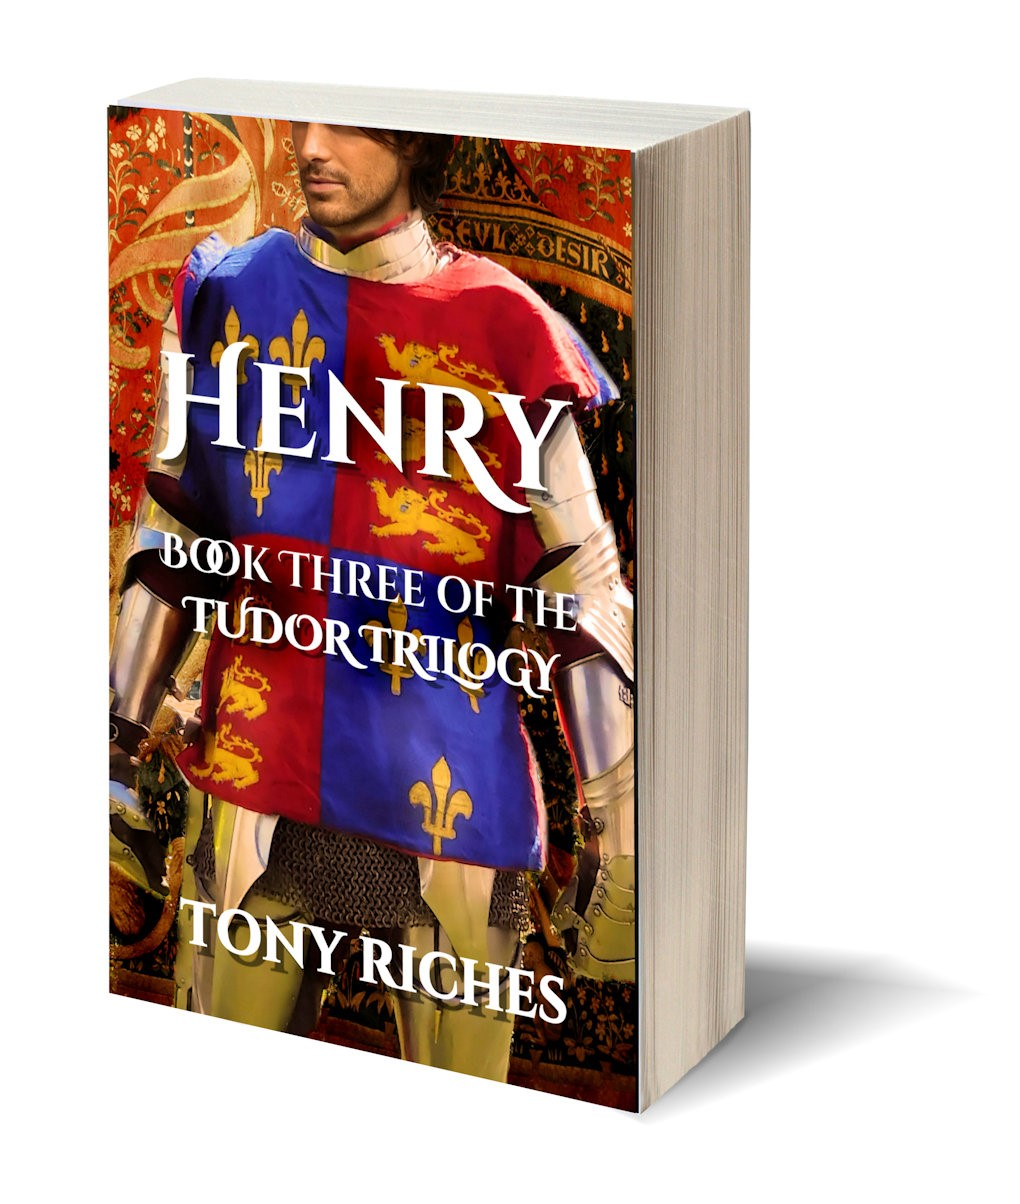 Bosworth 1485: After Victory Against King Richard Iii, Henry Tudor Becomes  King Of England Rebels And Pretenders Plot To Seize His Throne